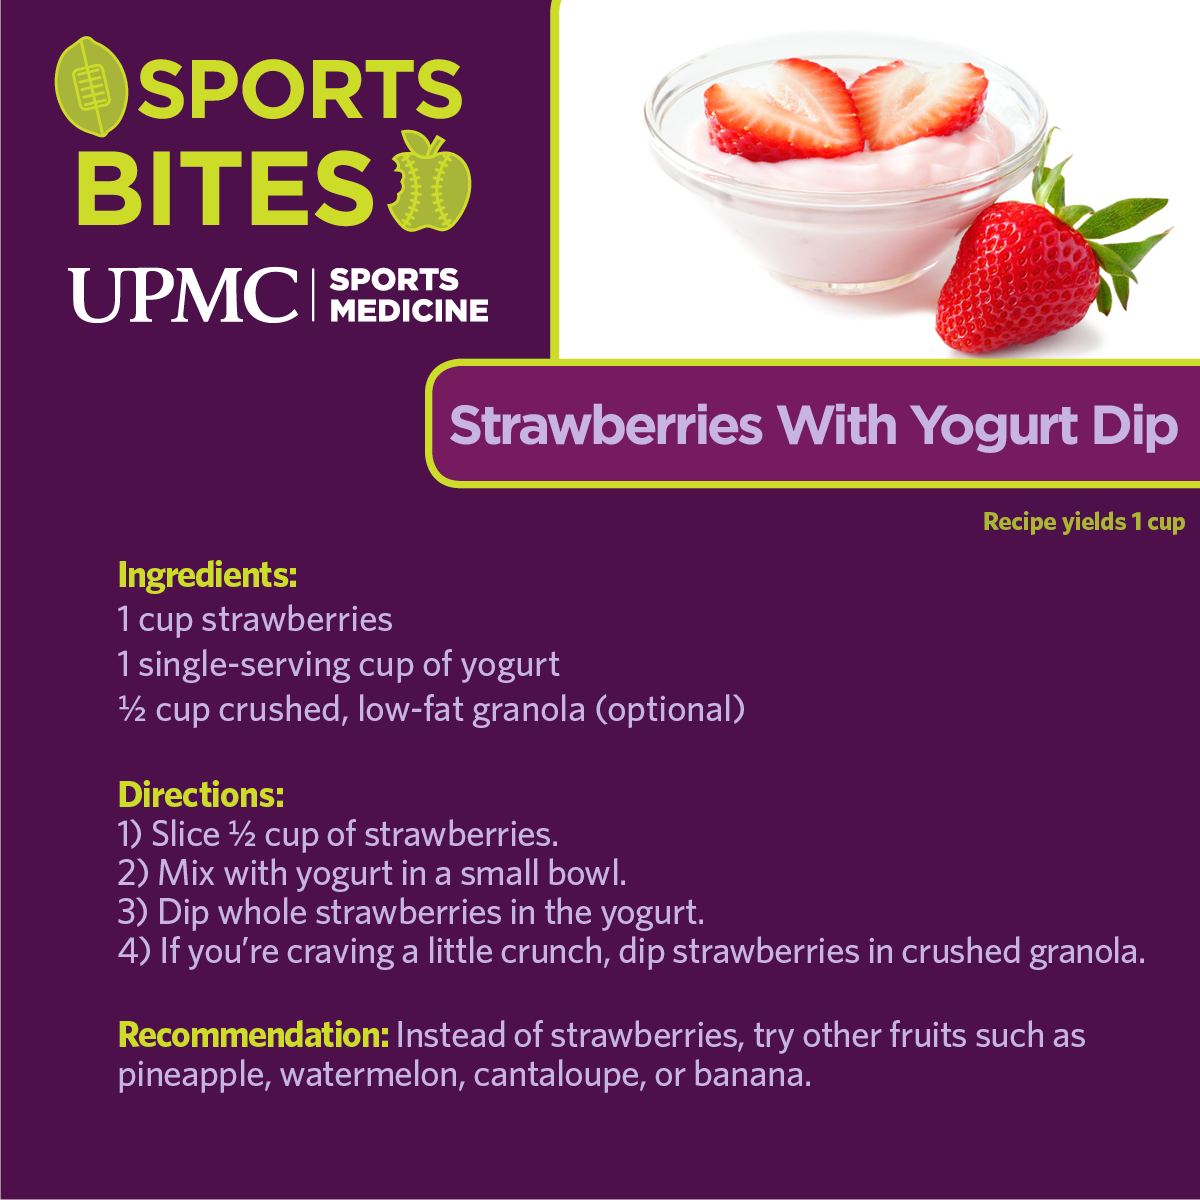 Strawberries with yogurt dip is a healthy recipe